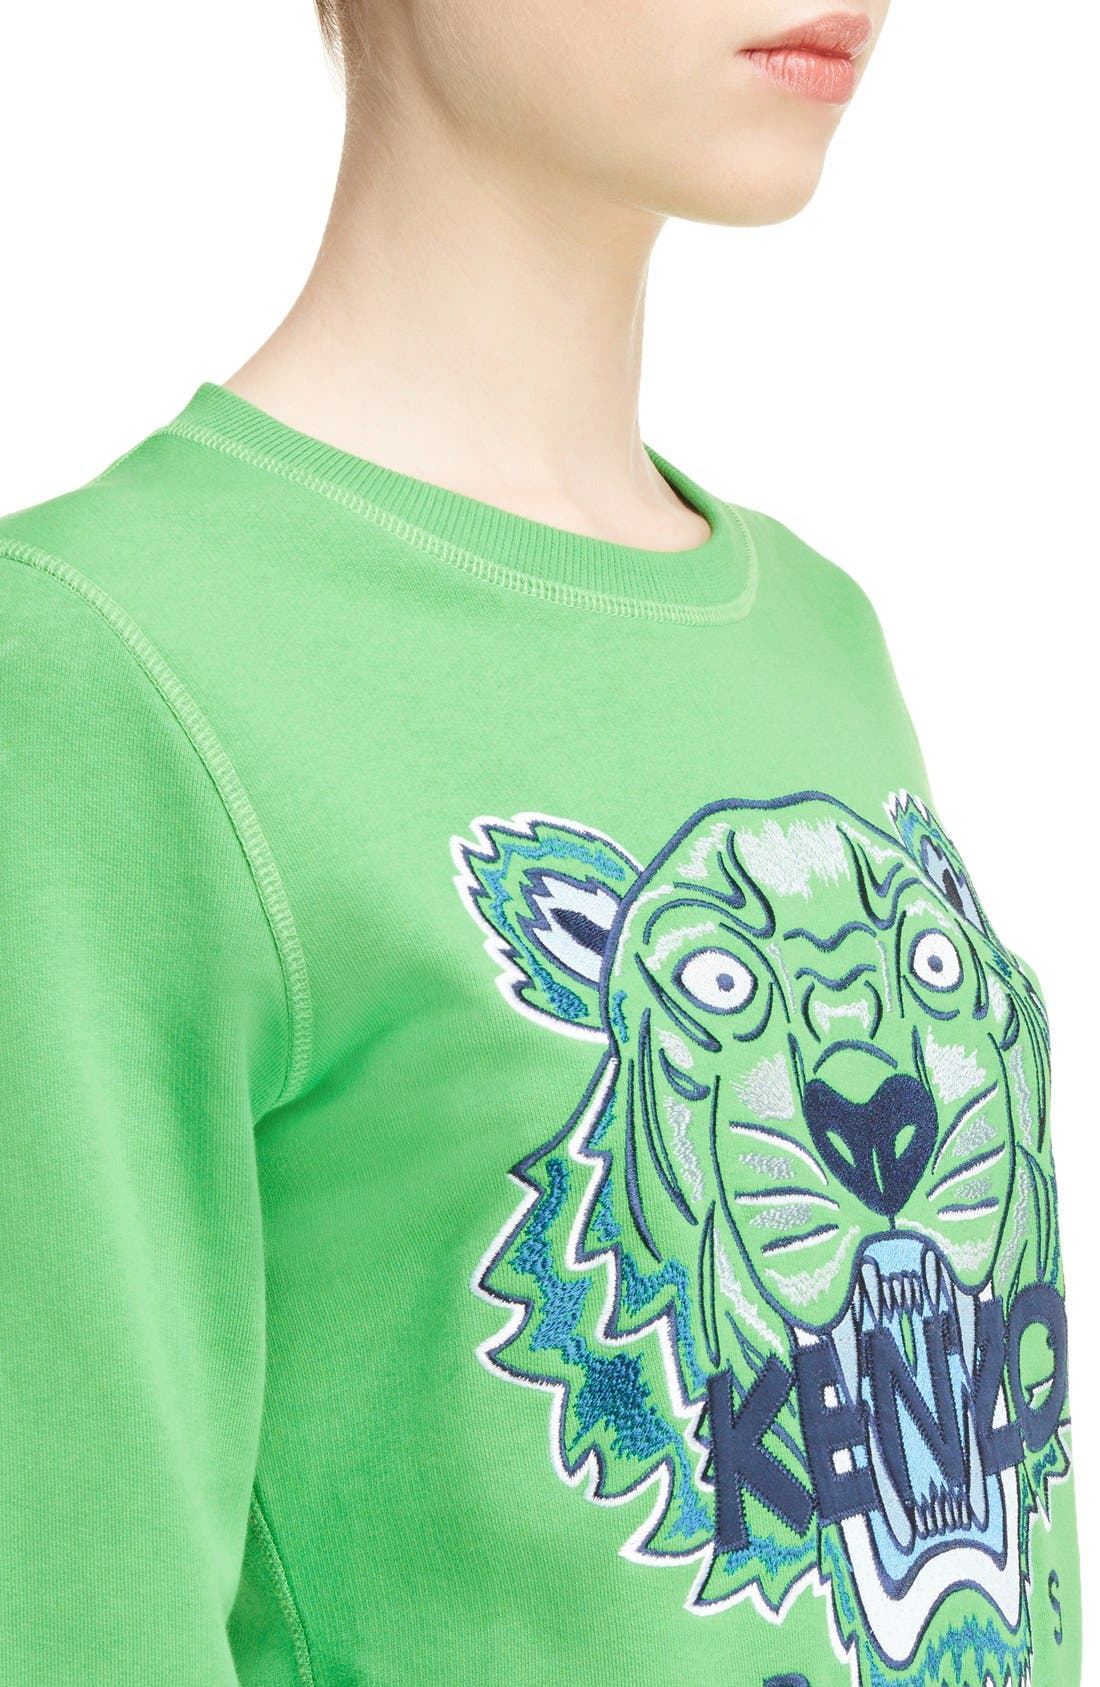 Embroidered Tiger Cotton Sweatshirt,                             Alternate thumbnail 4, color,                             Grass Green